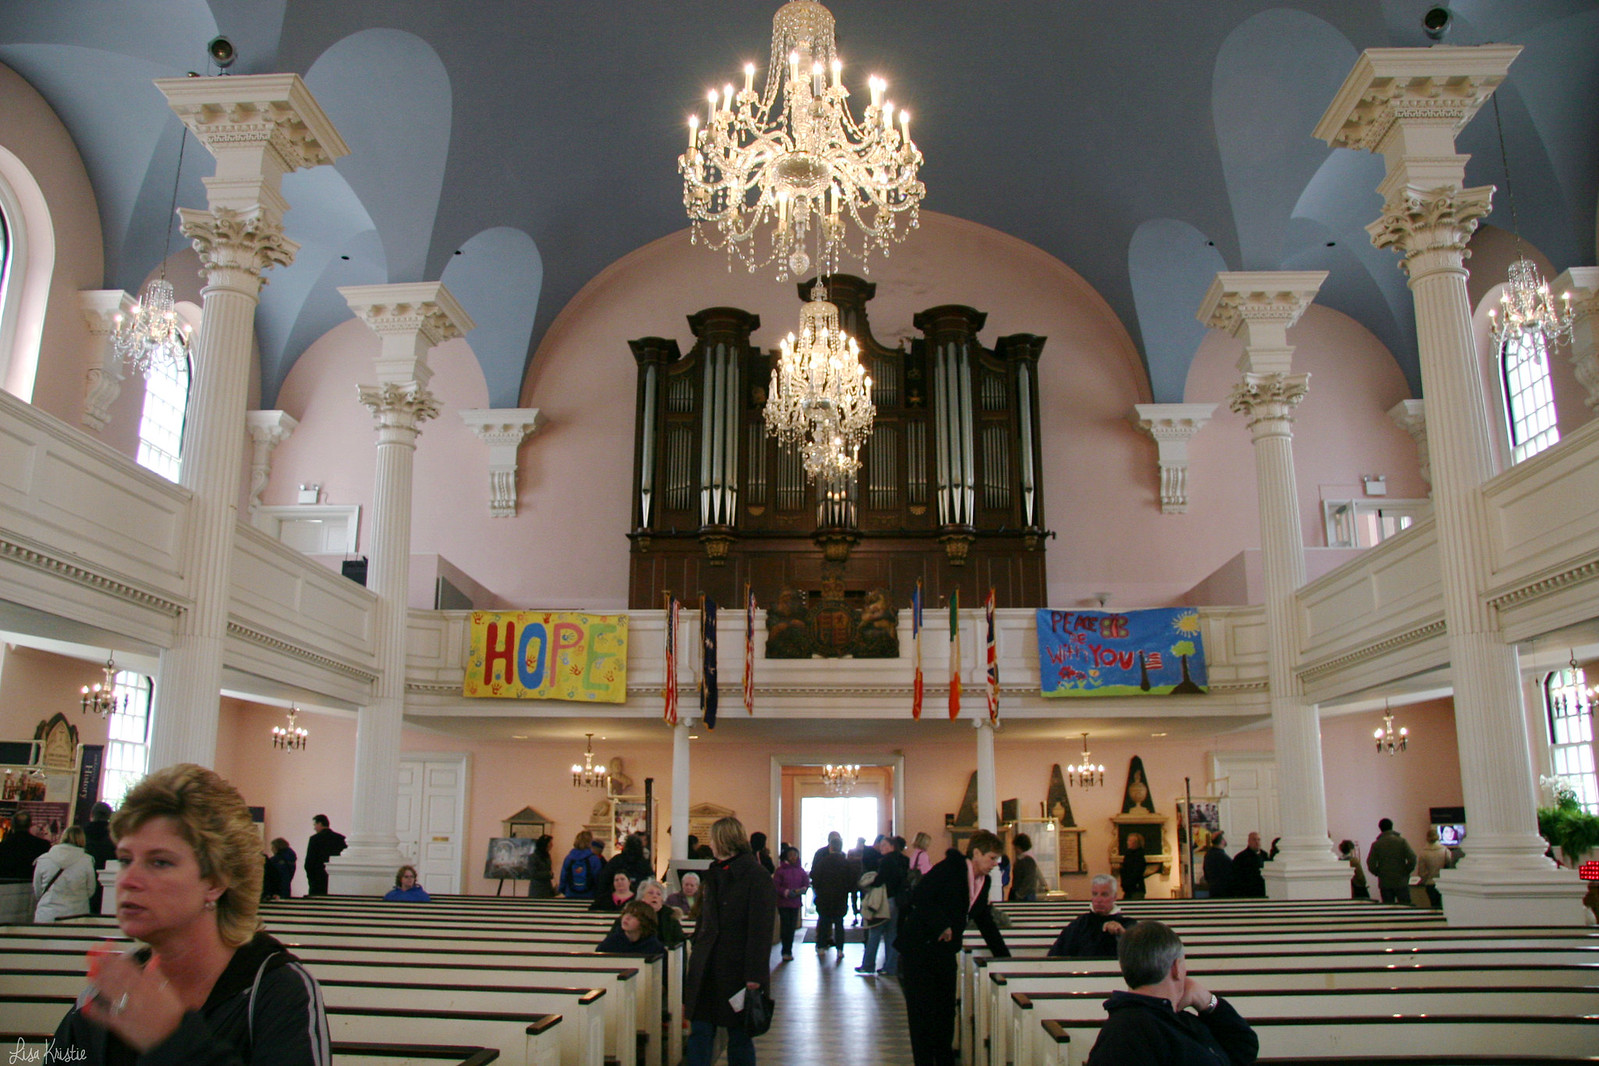 Saint Paul's chapel church lower manhattan new york city inside organ inside interior pink blue tourists spring april 2007